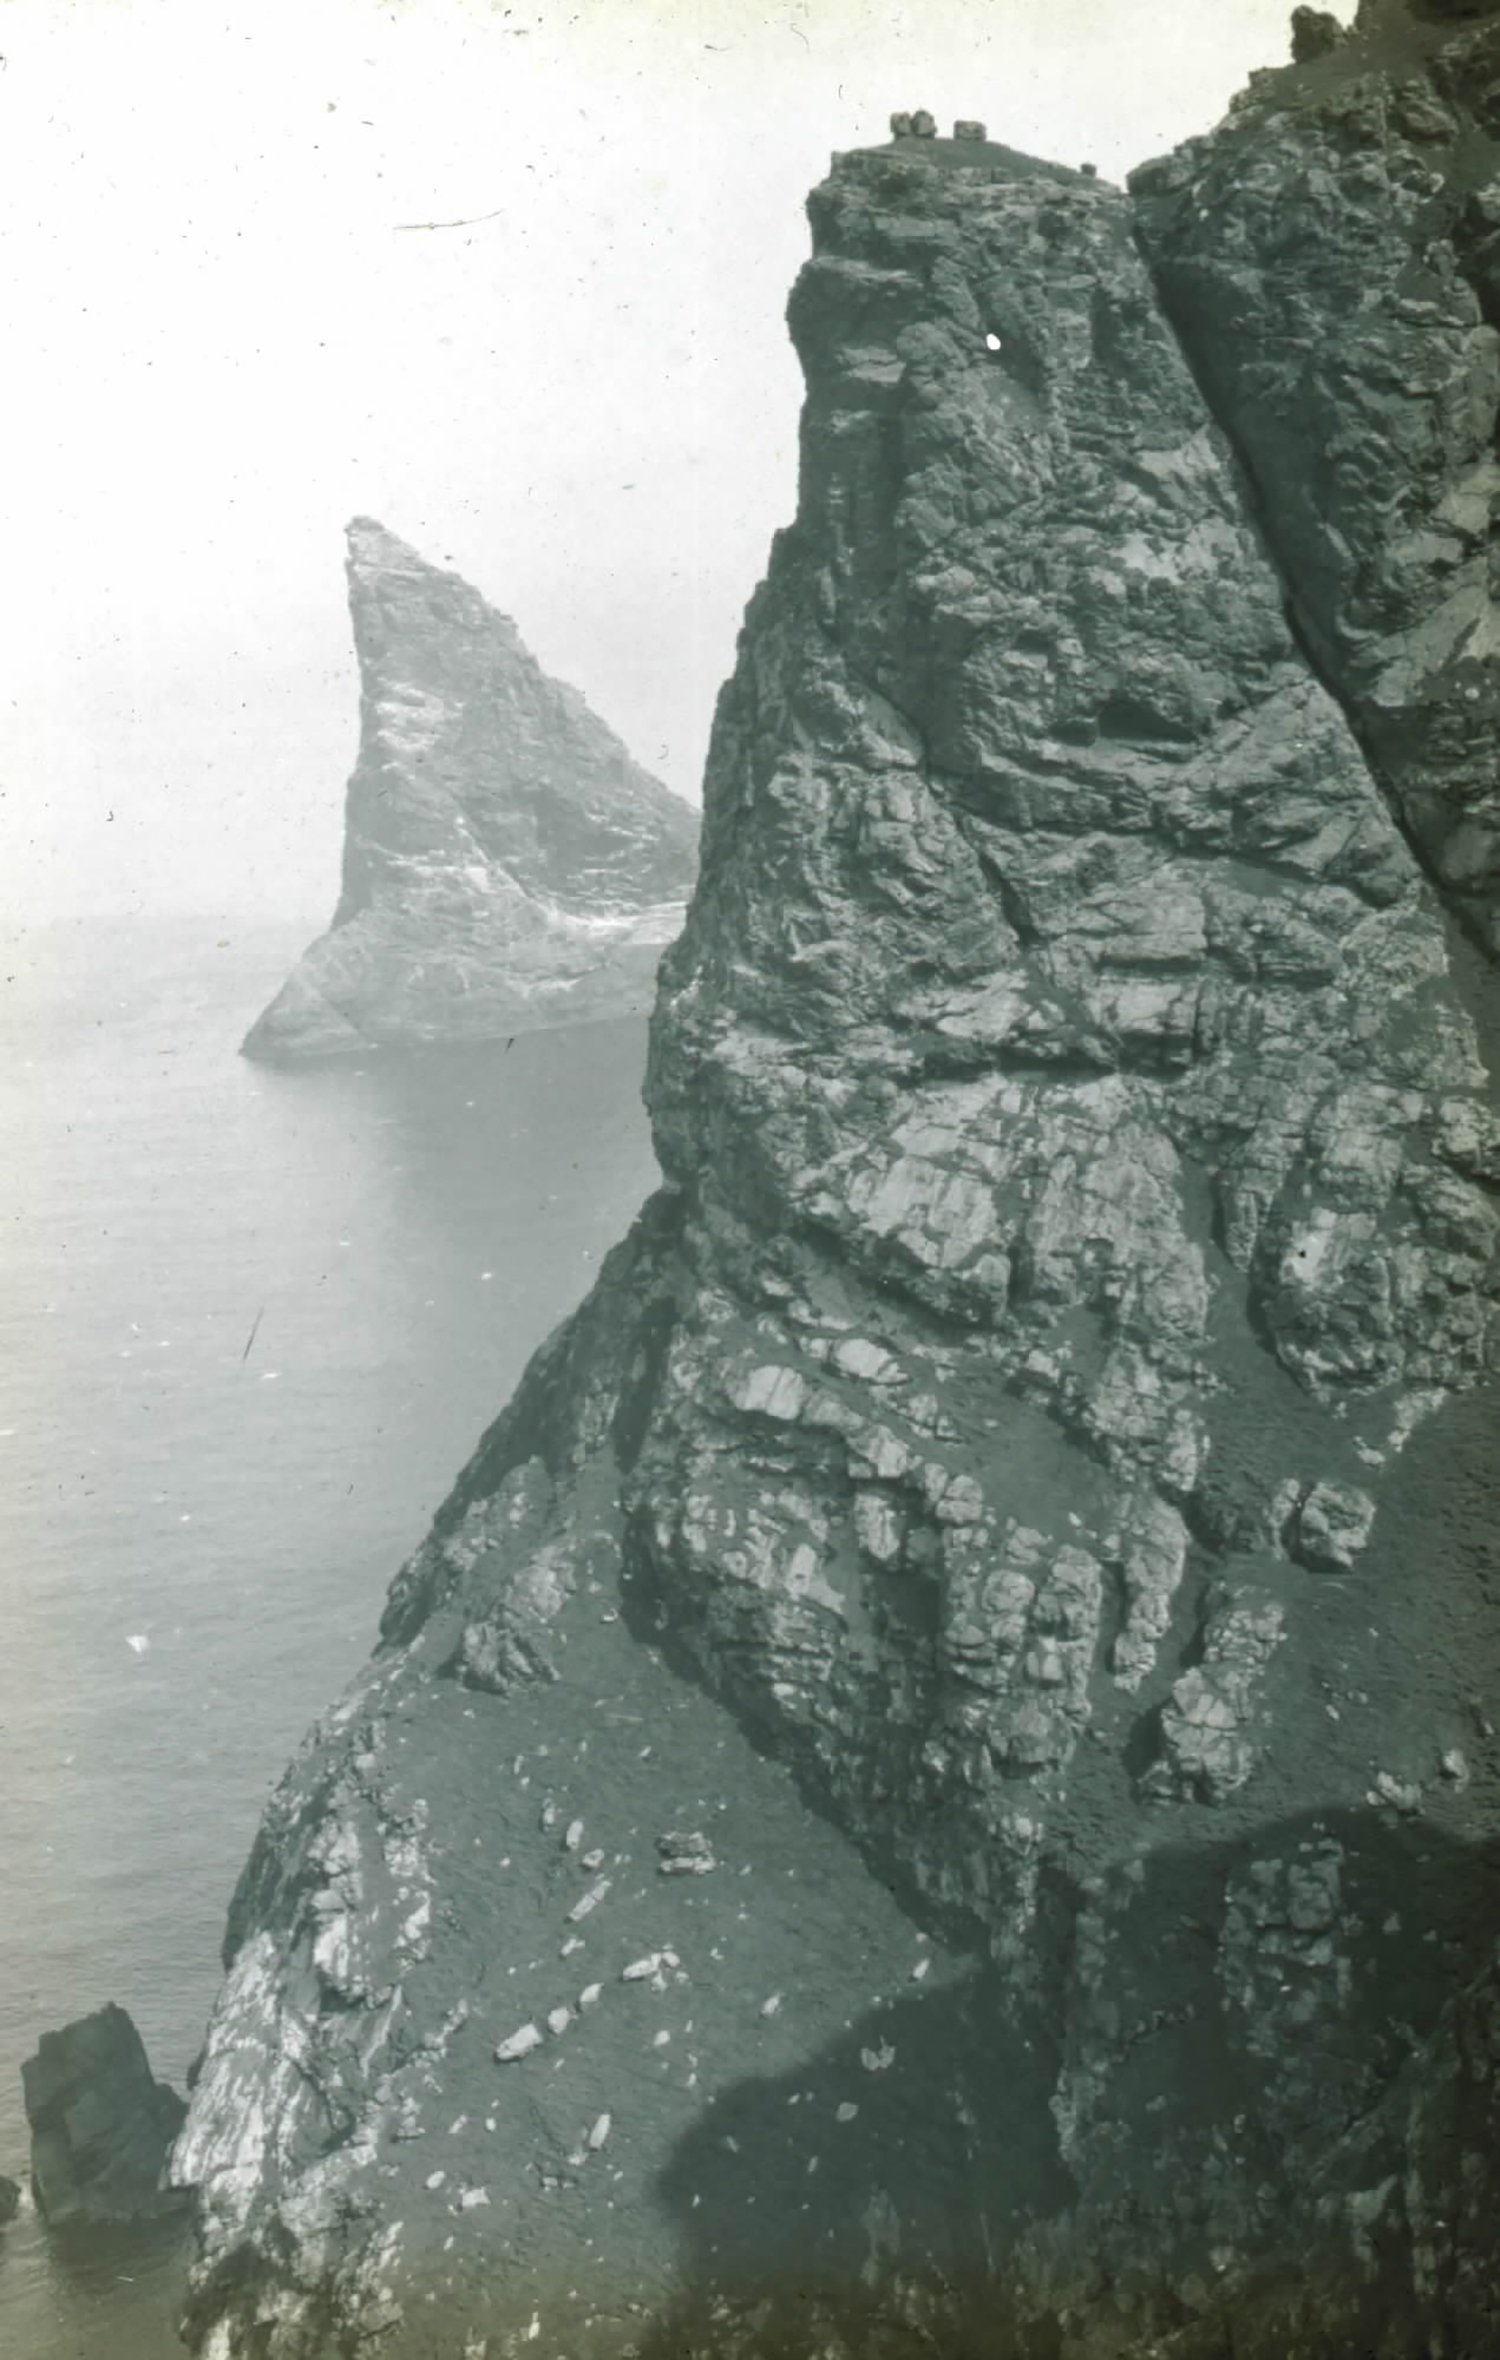 Fig. 5: Glass plate negative of Boreray (with Stac an Armin in the background) in the St Kilda archipelago, #165 © National Trust for Scotland, St Kilda